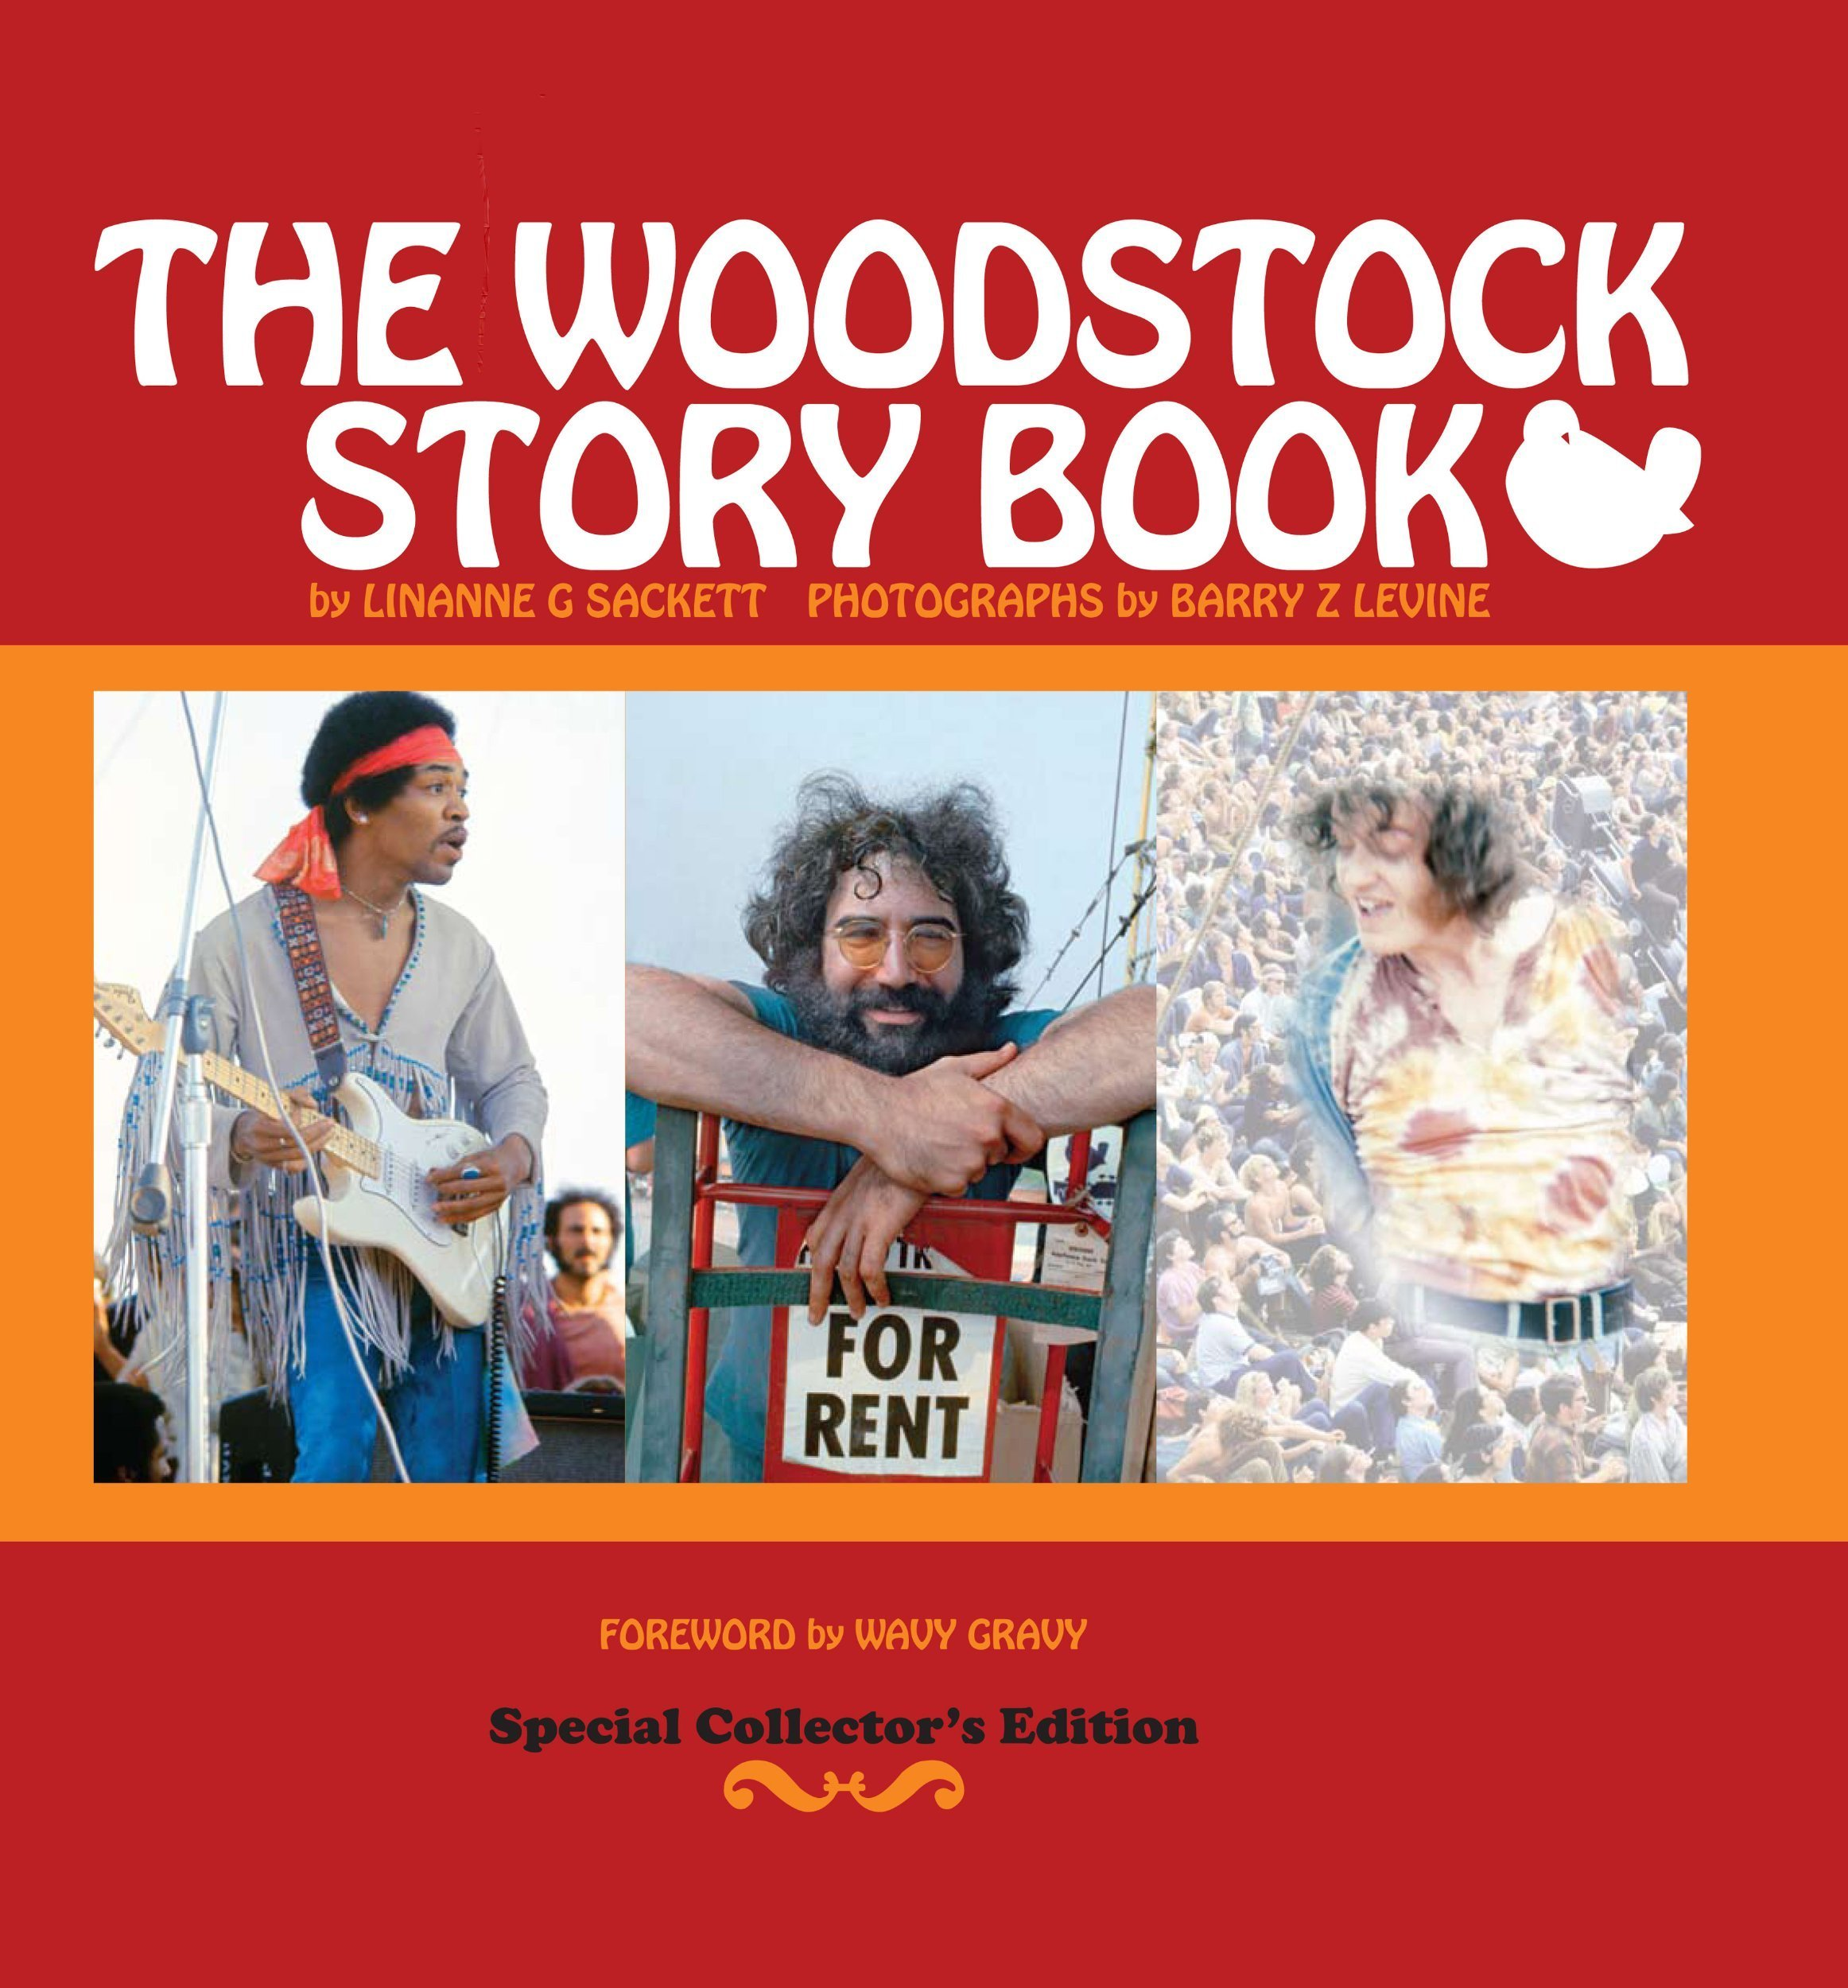 the woodstock story book linanne g sackett barry z levine the woodstock story book linanne g sackett barry z levine 9780977339983 com books